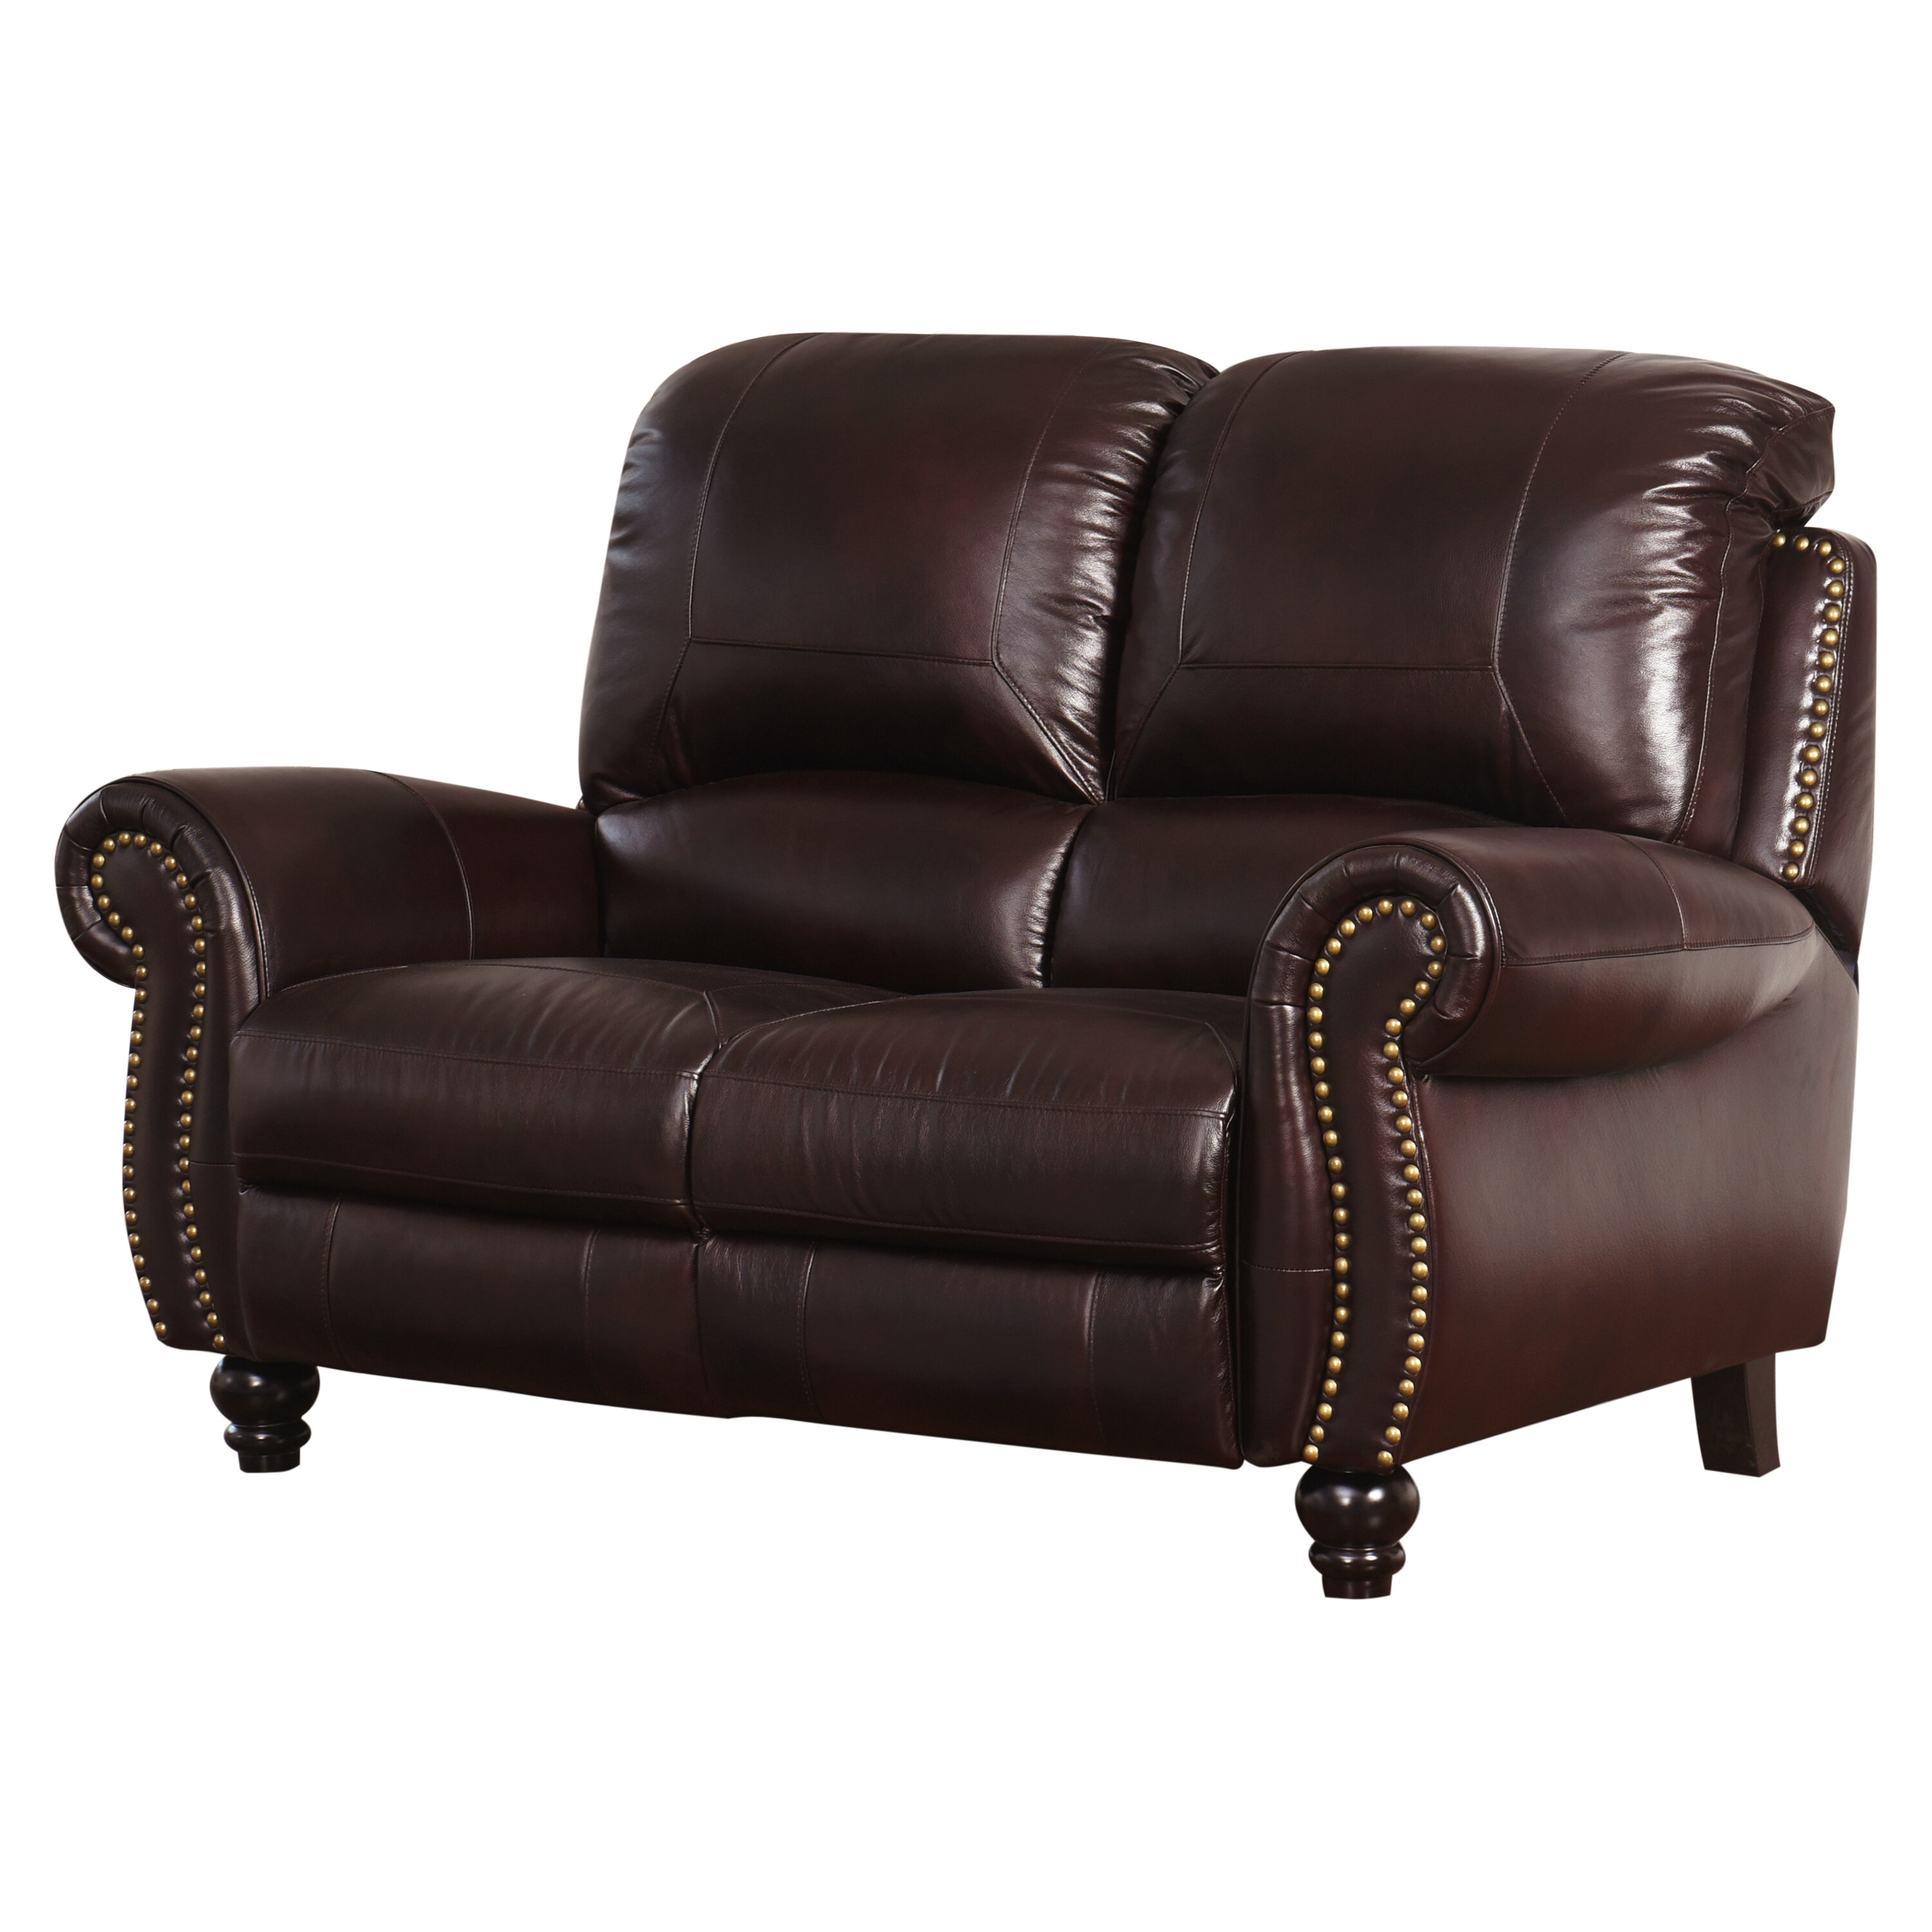 Fantastic Williston Forge Tanguay Leather Reclining Loveseat Reviews Uwap Interior Chair Design Uwaporg